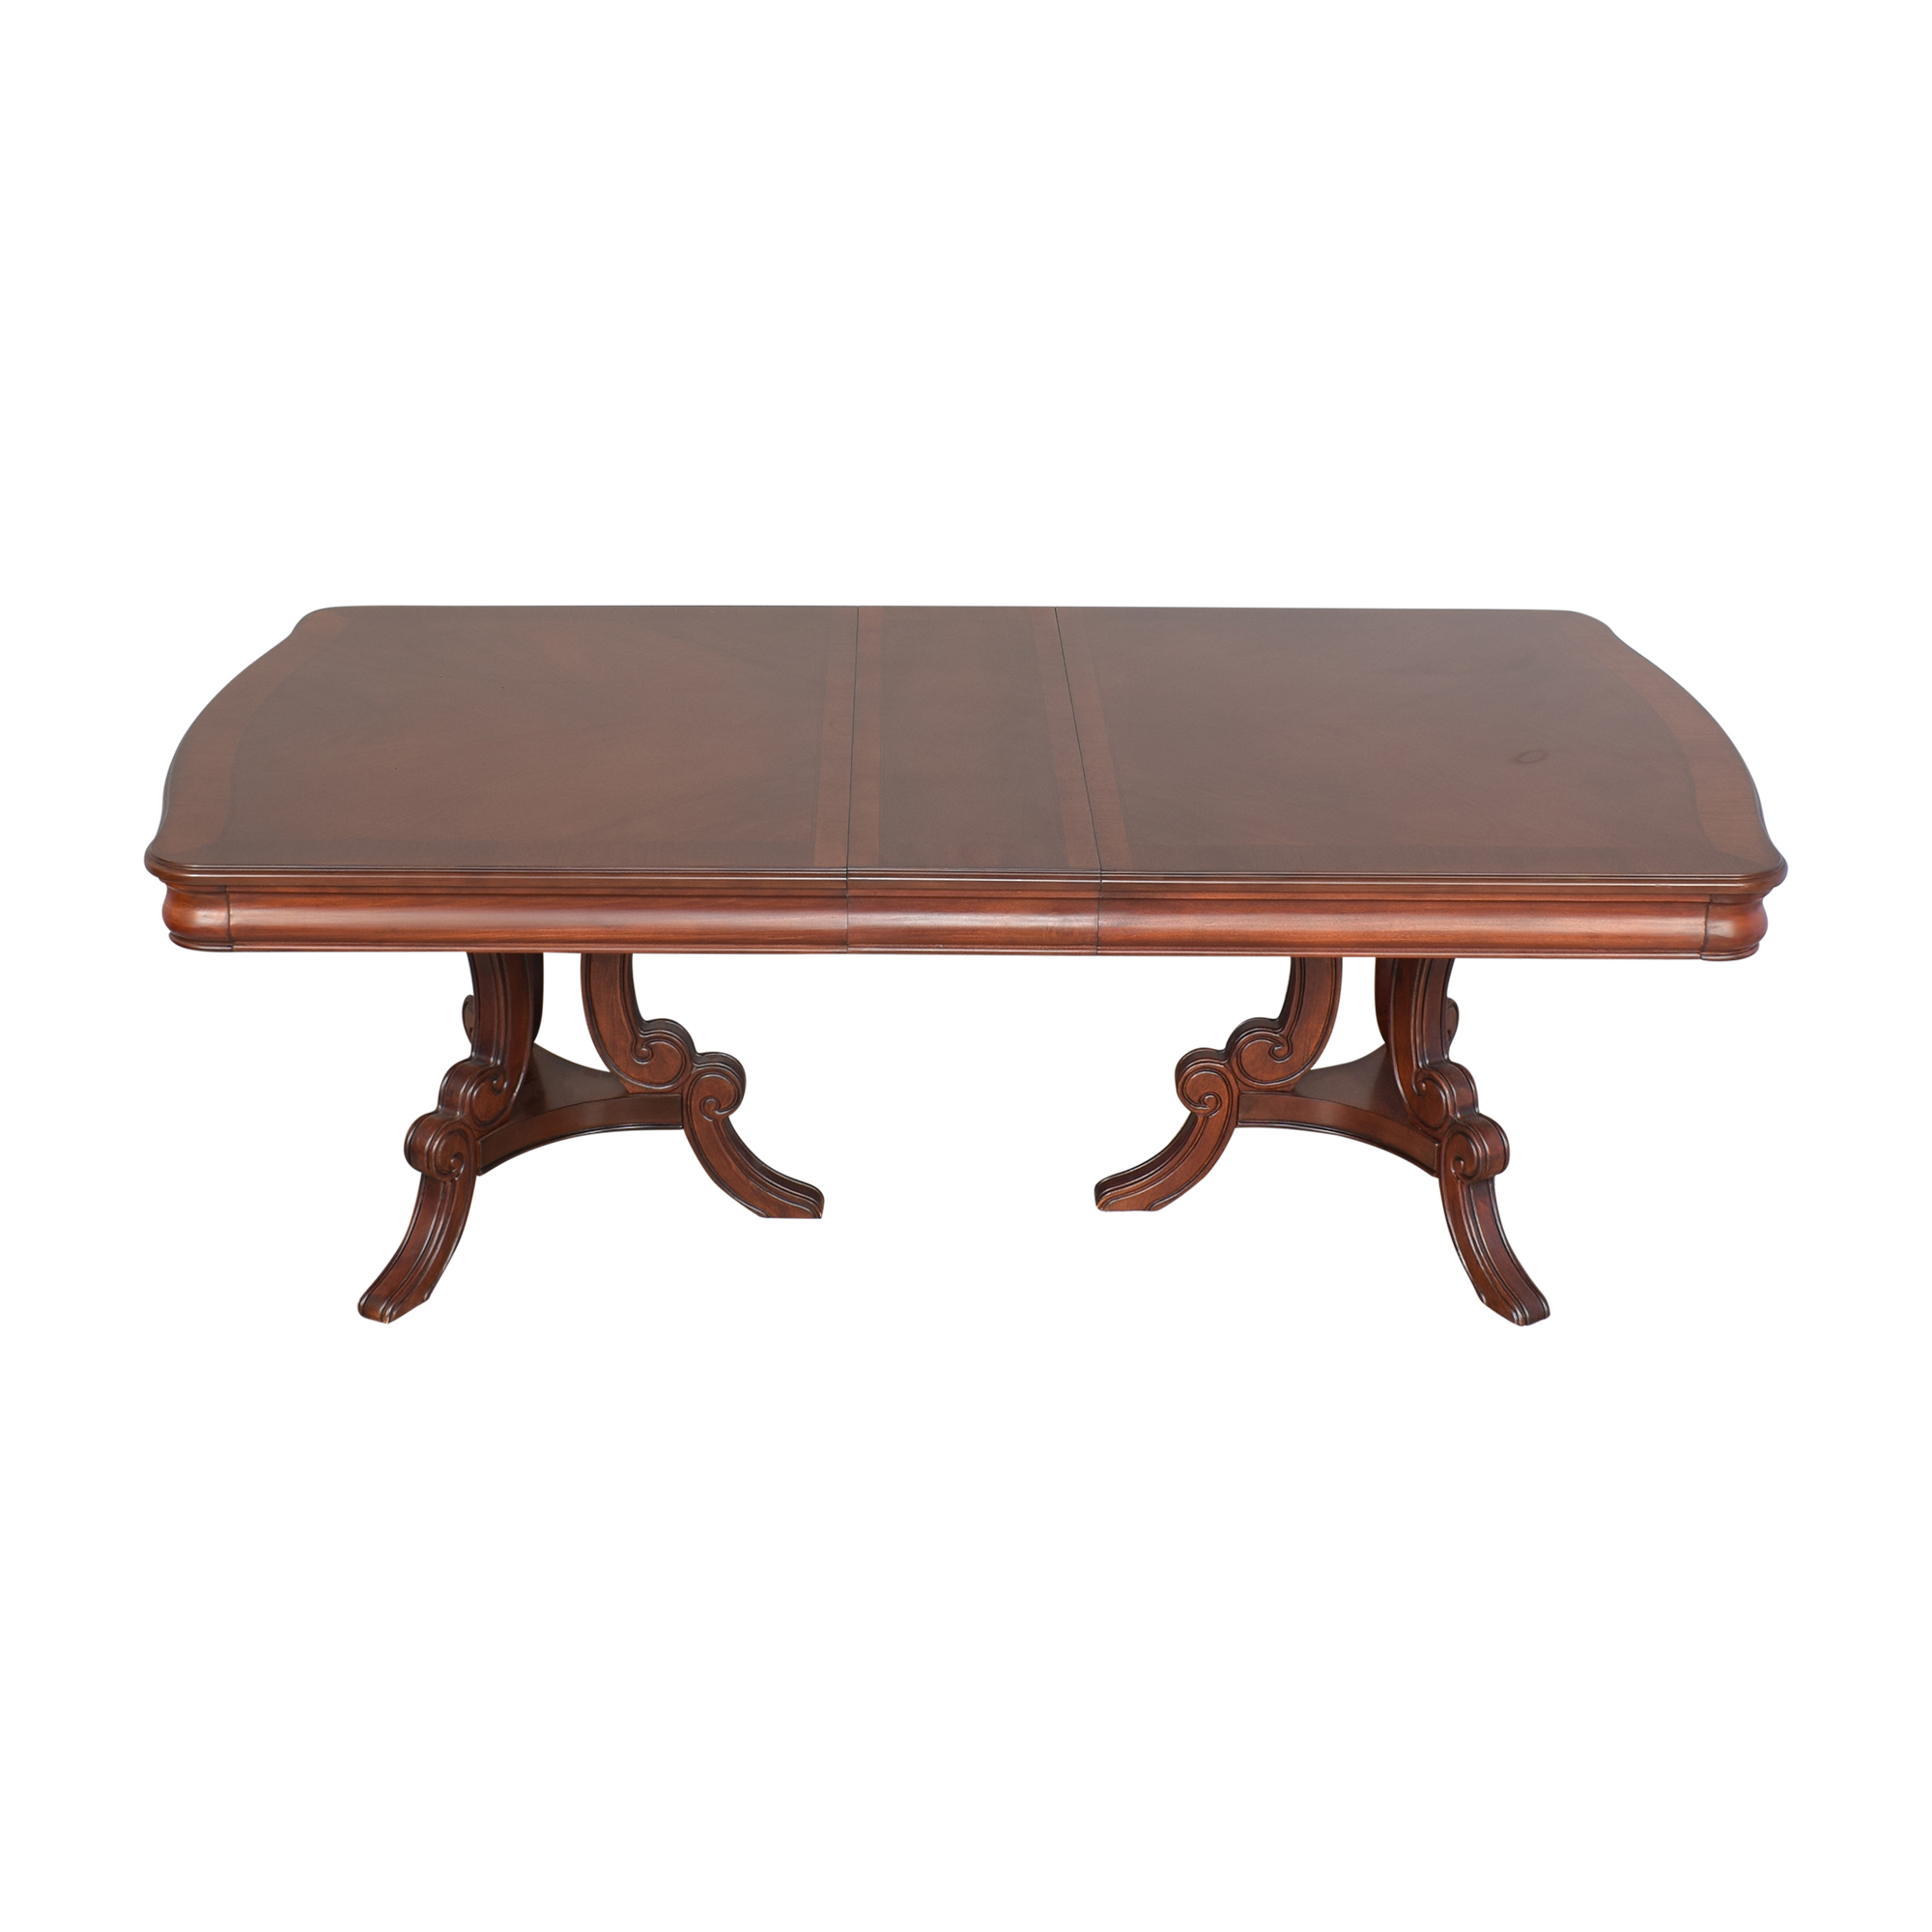 Raymour & Flanigan Extendable Dining Table / Tables